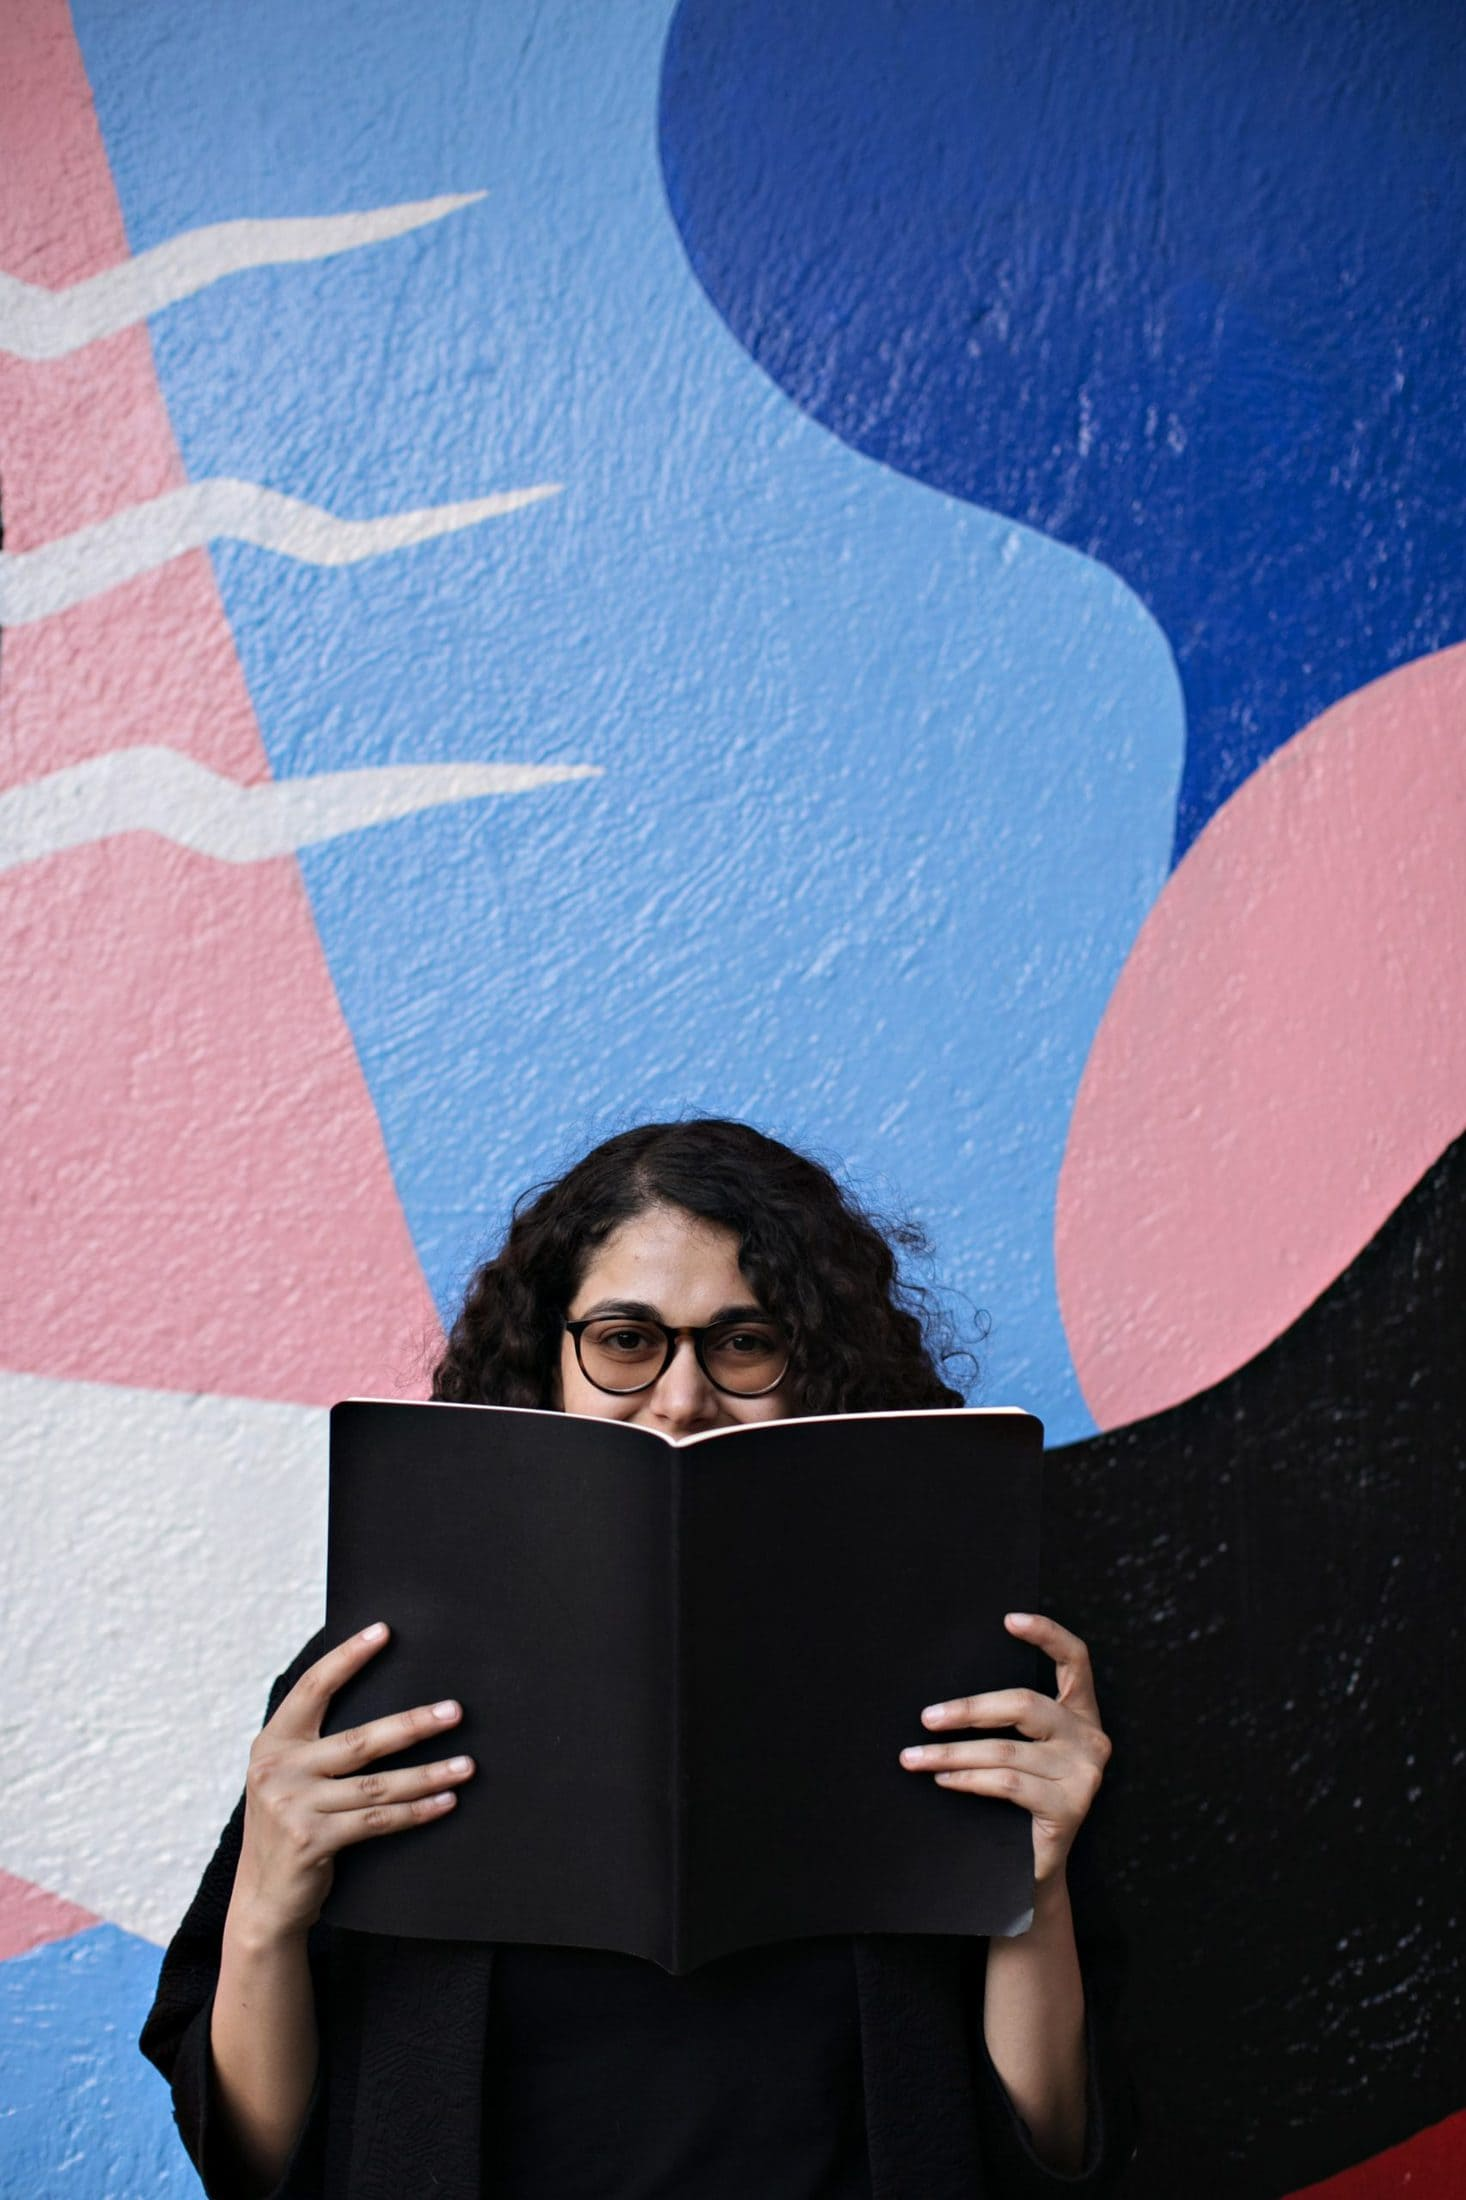 woman standing and holding open book covering her mouth